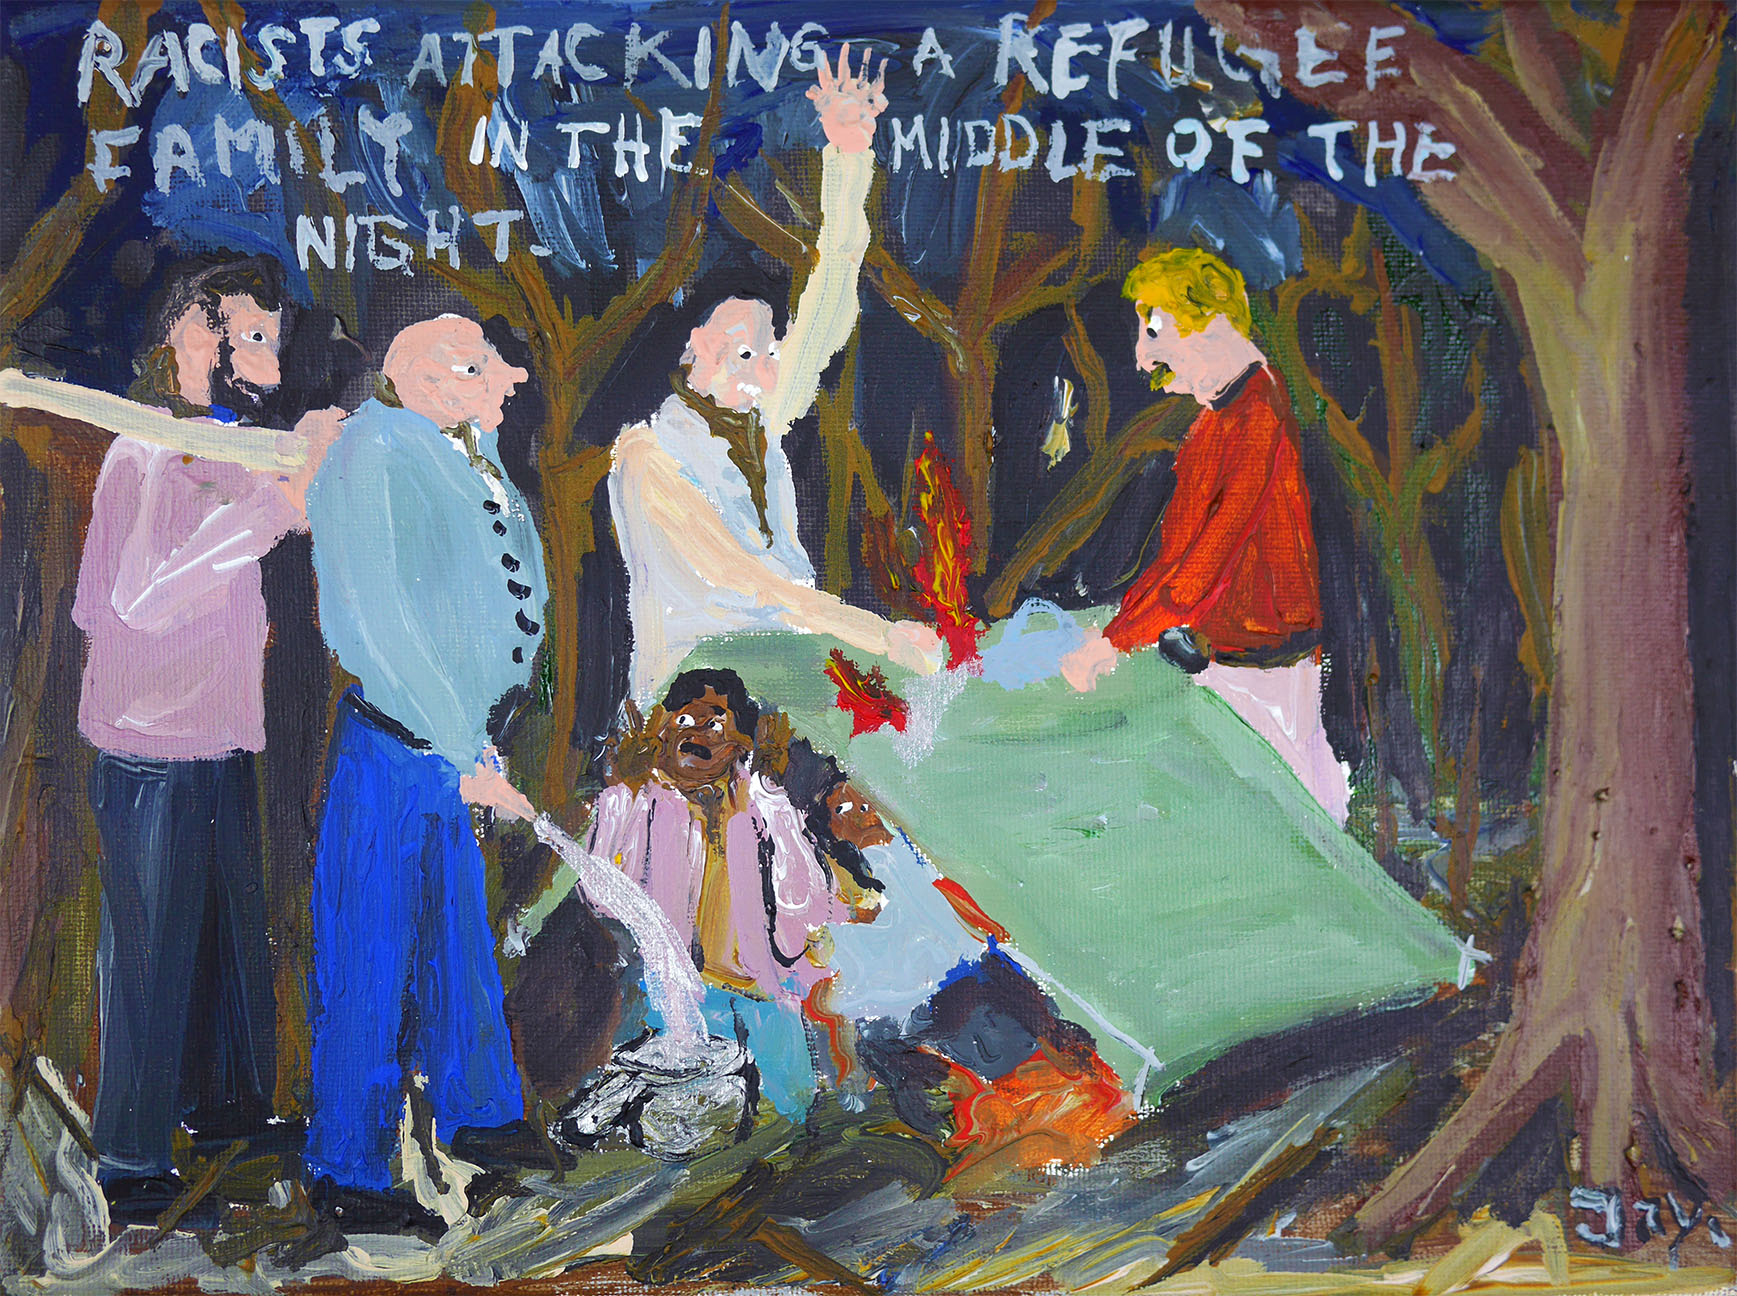 Bad Painting number 75: Racists attacking a refugee family in the middle of the night.